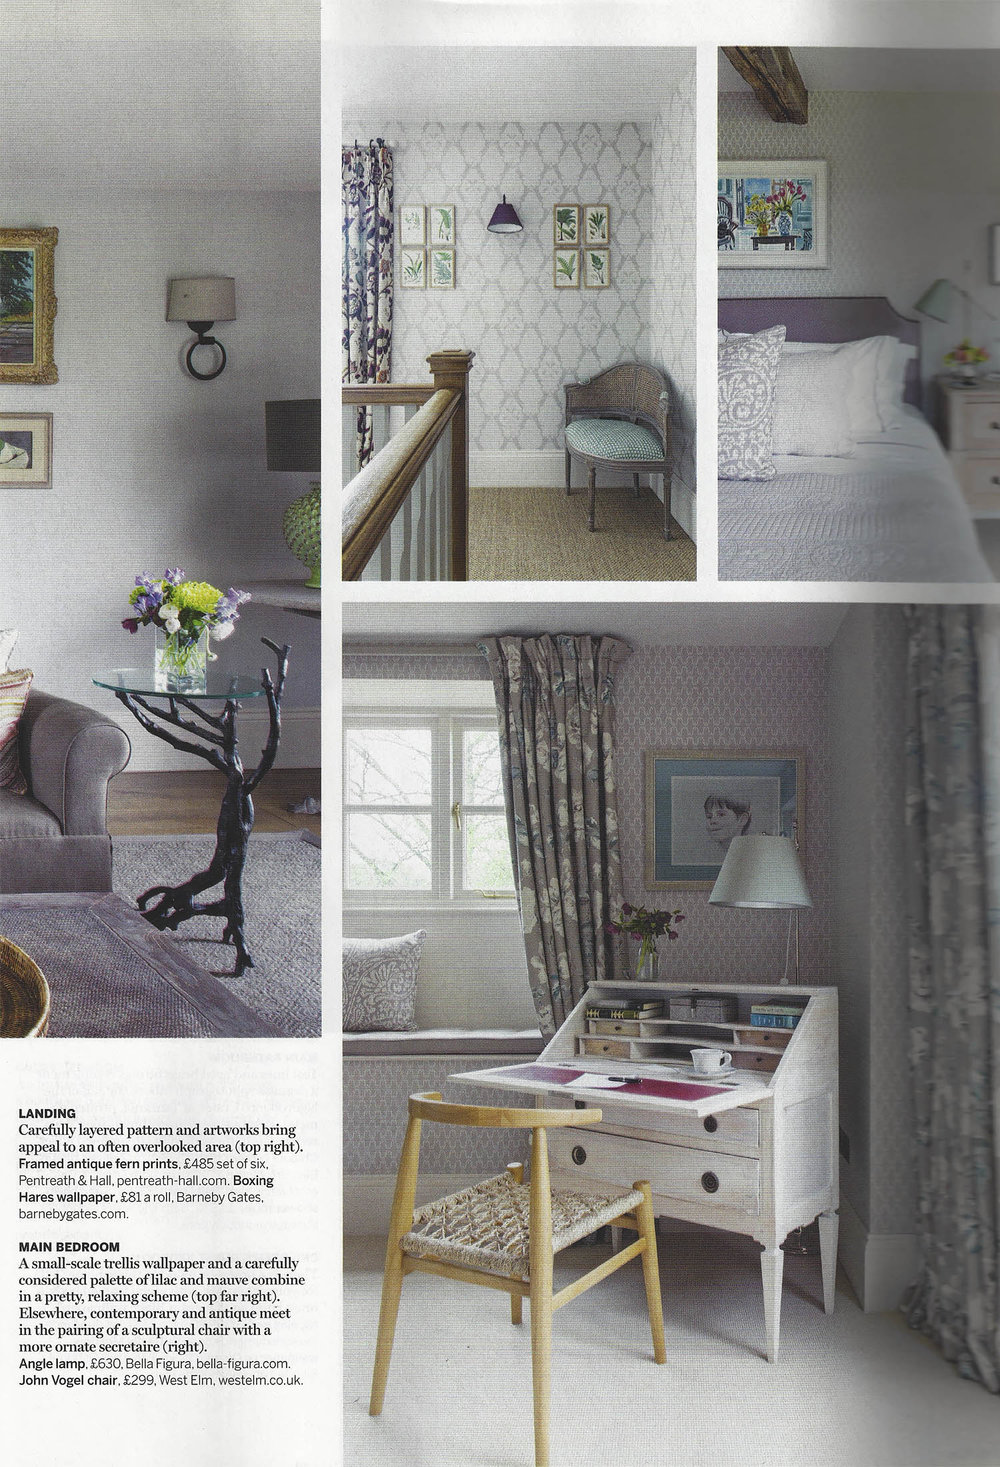 House & Gardens - Feb 2017 - 'Inspired by Block Prints' - Page 88 - 89 - Cushion - Pomeroy-2.jpg